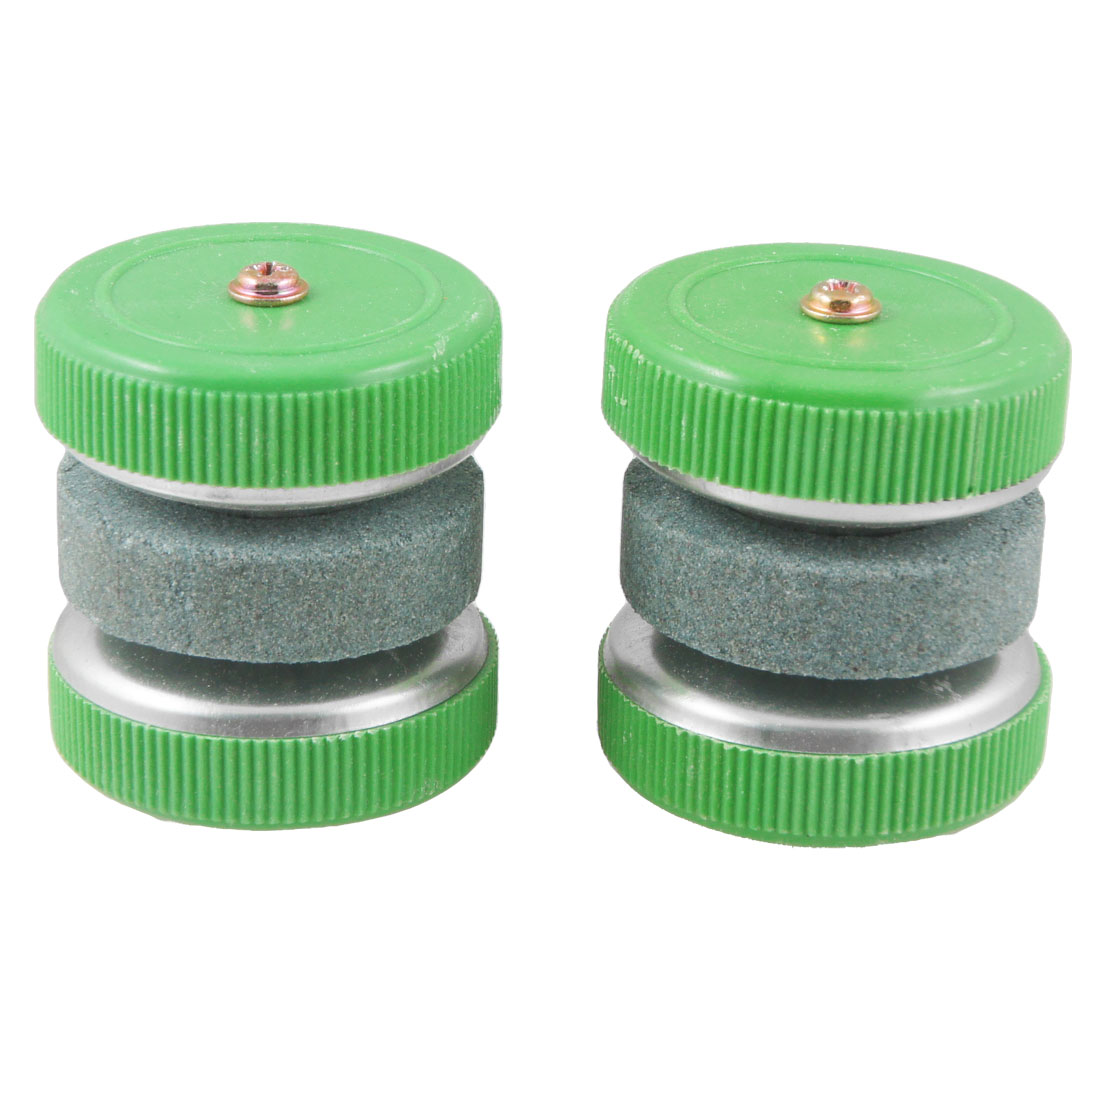 Grit Lapped Round Wheel Sharping Whetstone Sharpener Green 2 Pcs